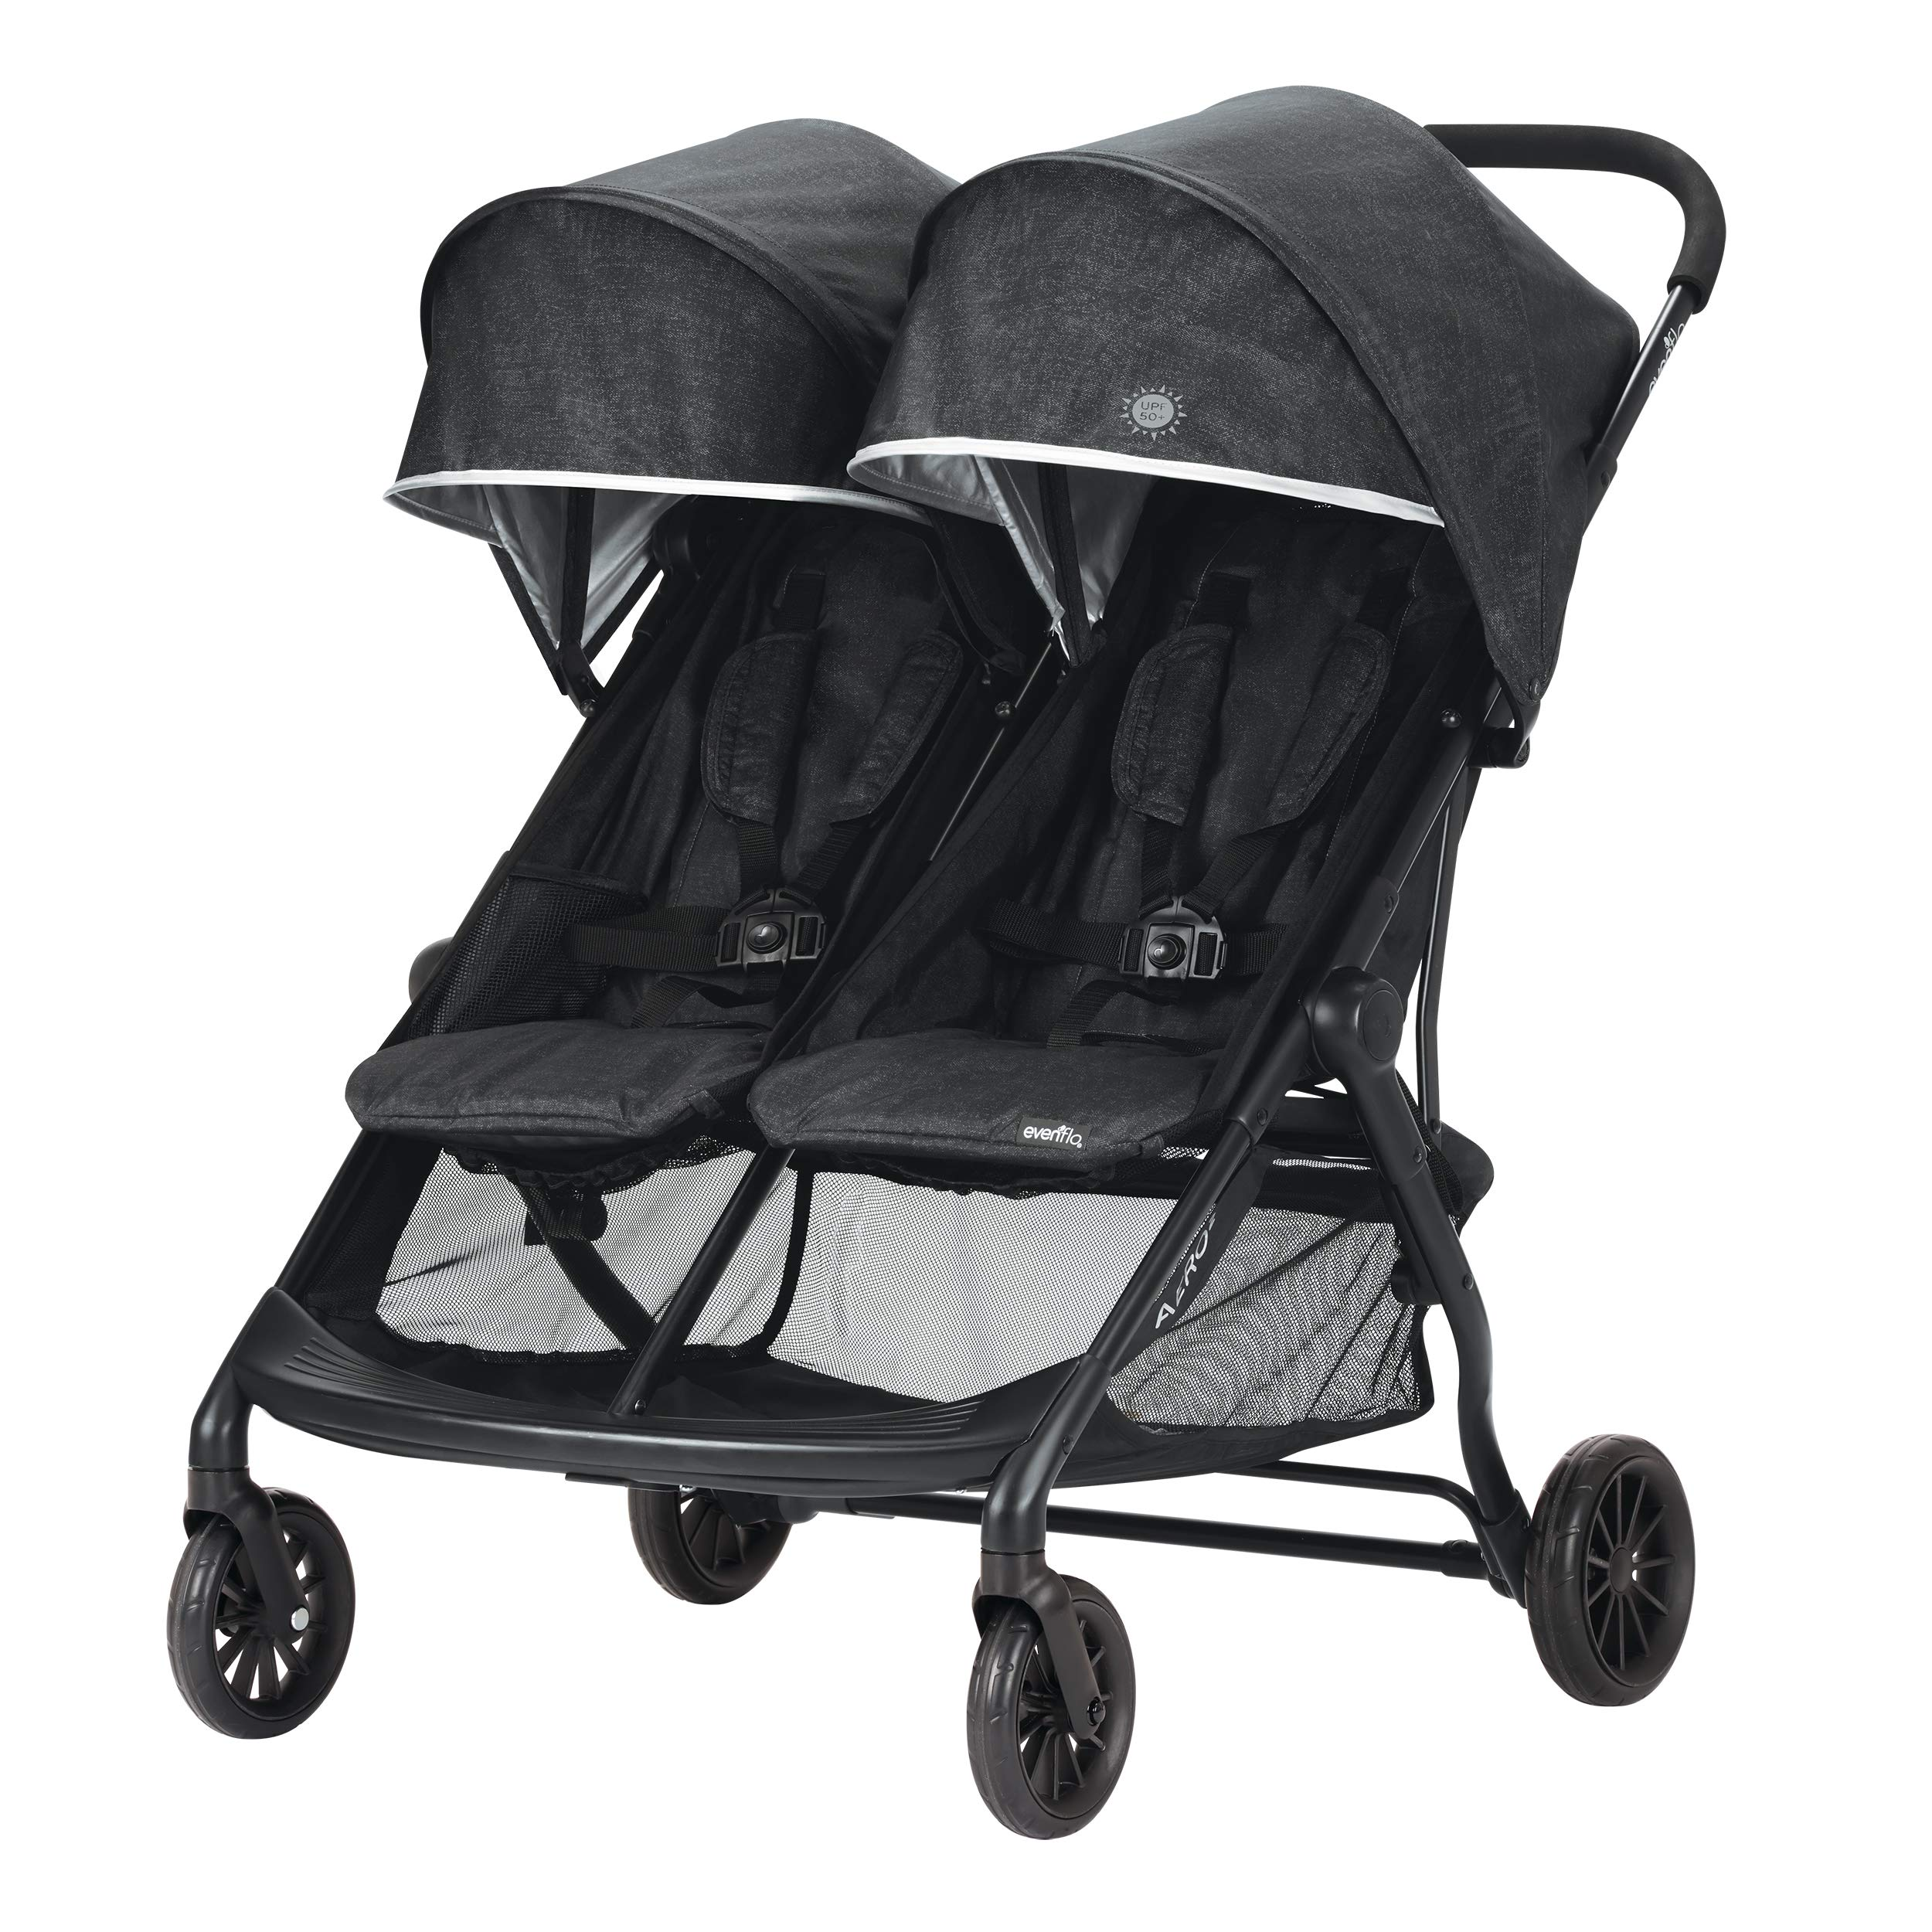 Evenflo Aero2 Ultra-Lightweight Double Strollers, Compact, Self-Standing Folding Design, Shopping Basket Single-Child Mode, Seatback Storage Pocket, 2 Mesh In-Seat Pockets, 50-lb Per Seat, Osprey Gray by Evenflo